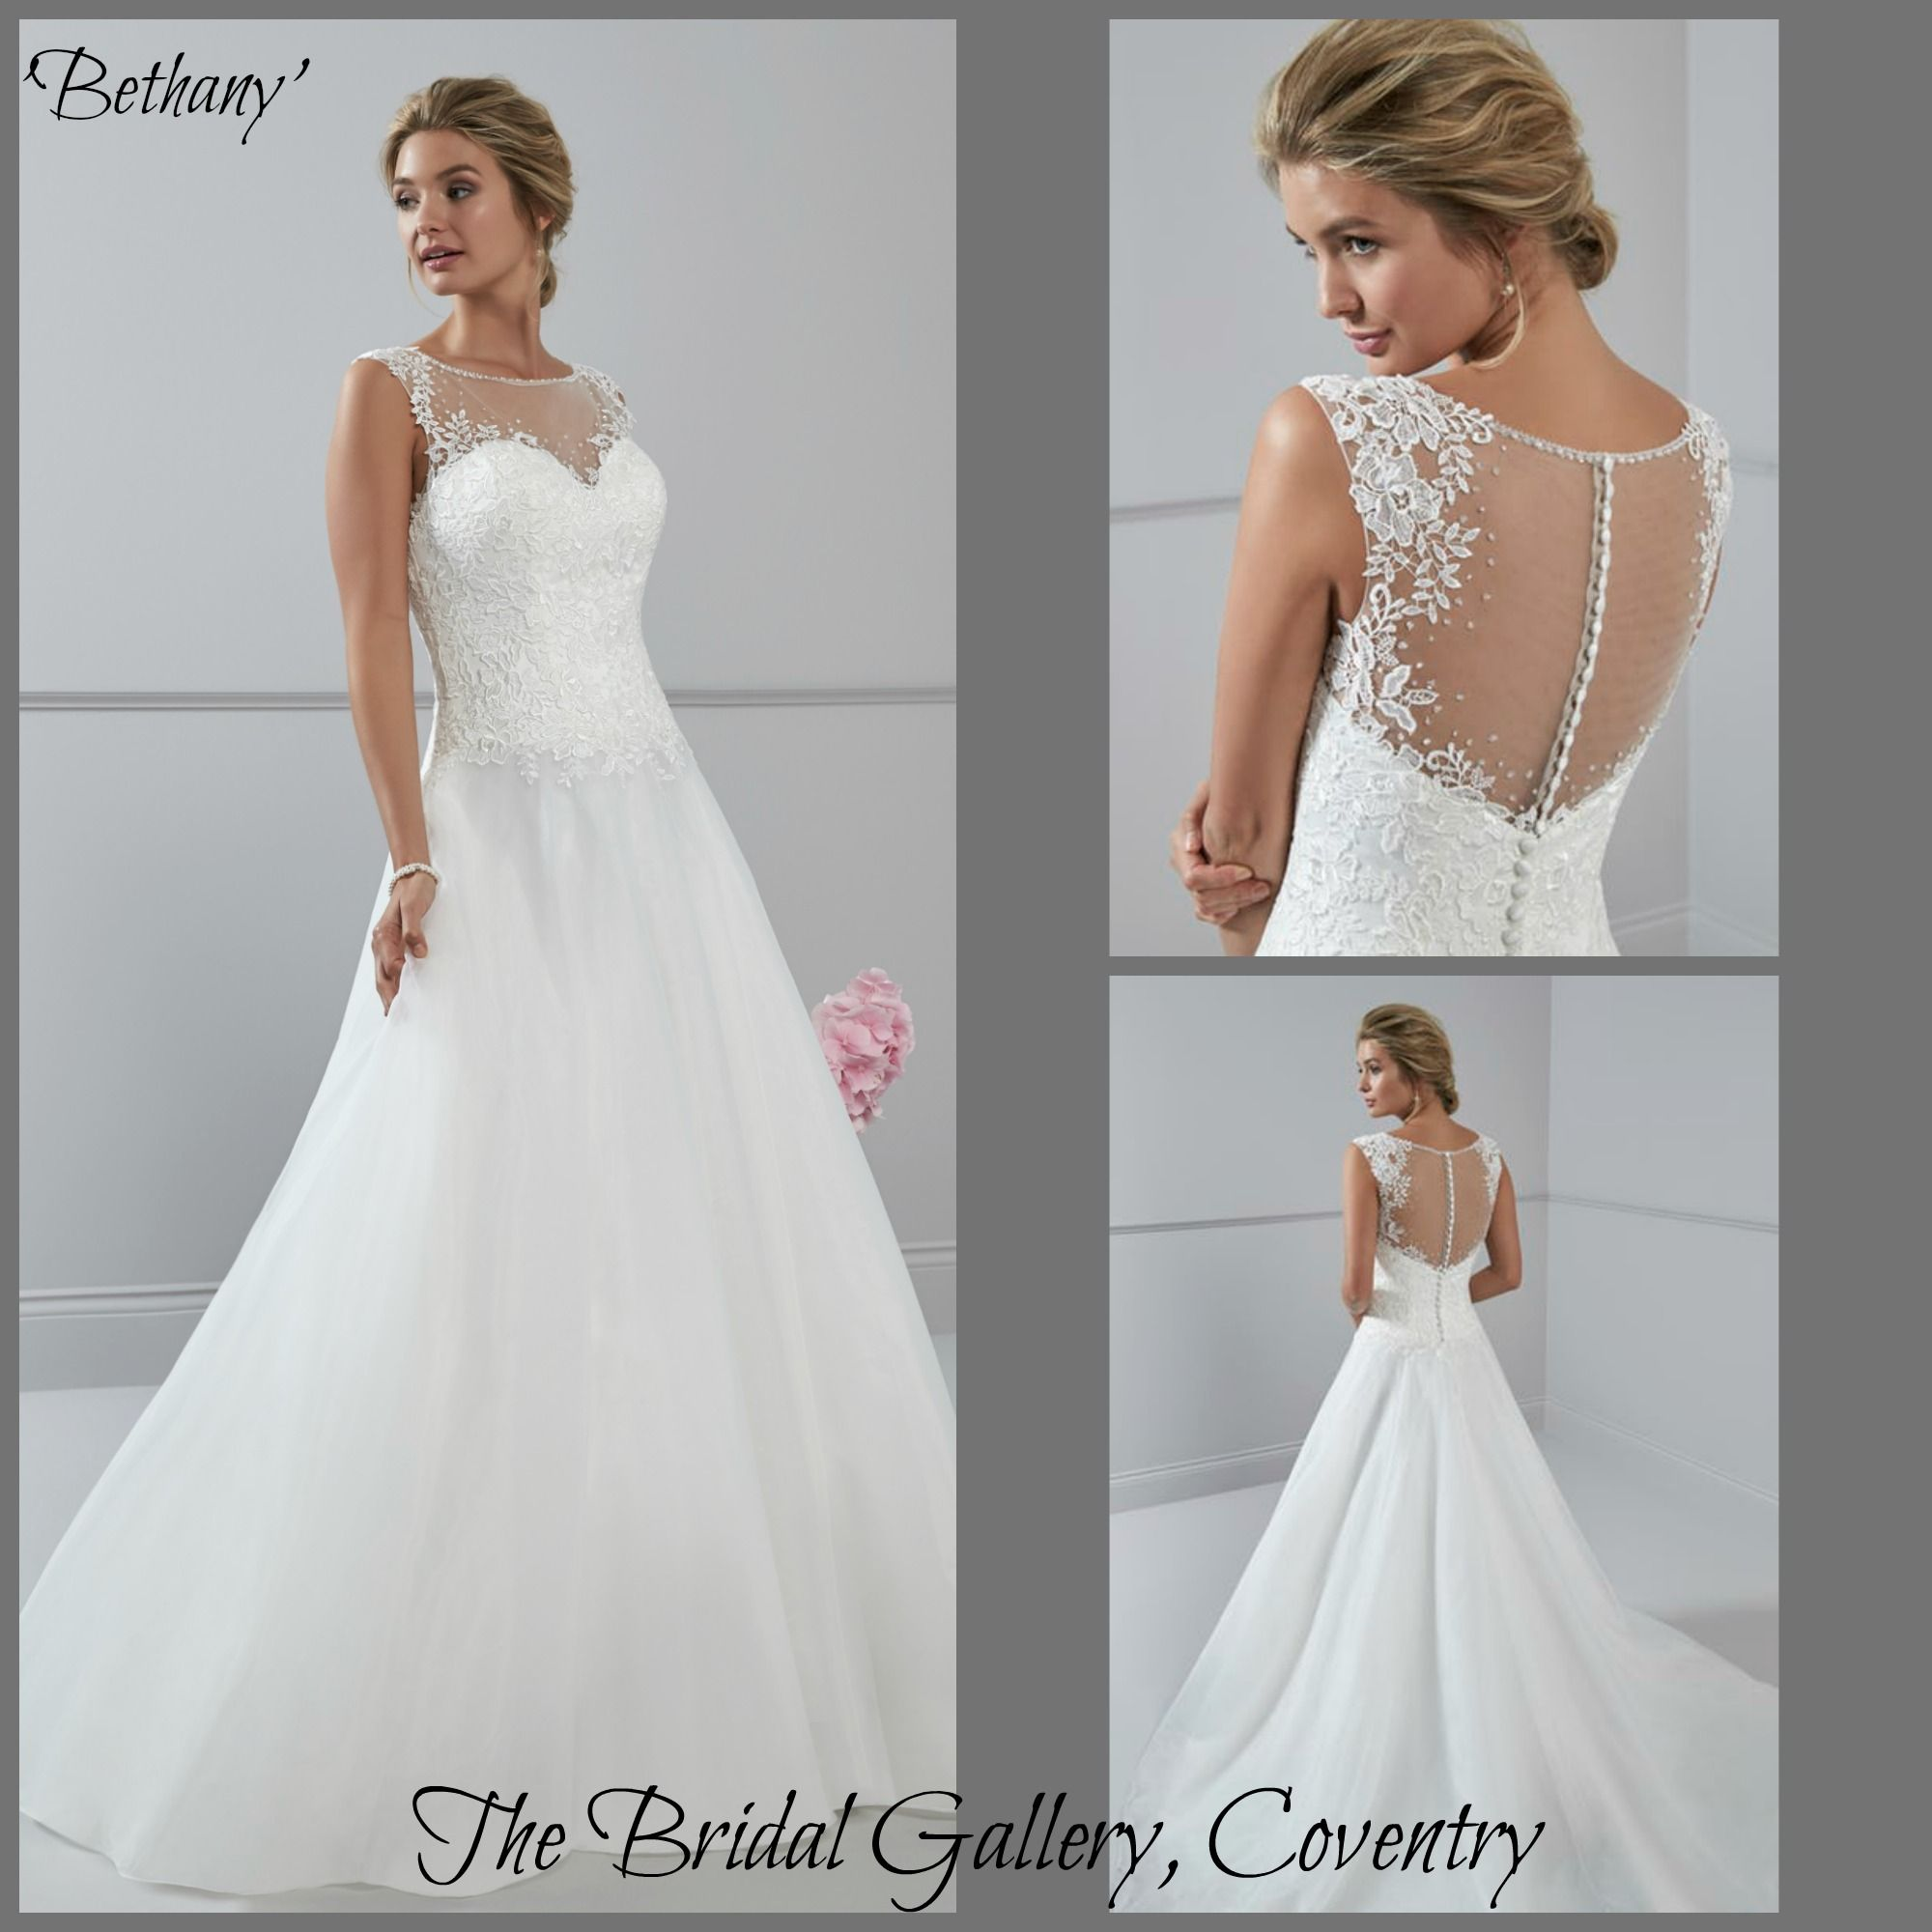 Pin by The Bridal Gallery, Coventry on Collection 2018 | Pinterest ...